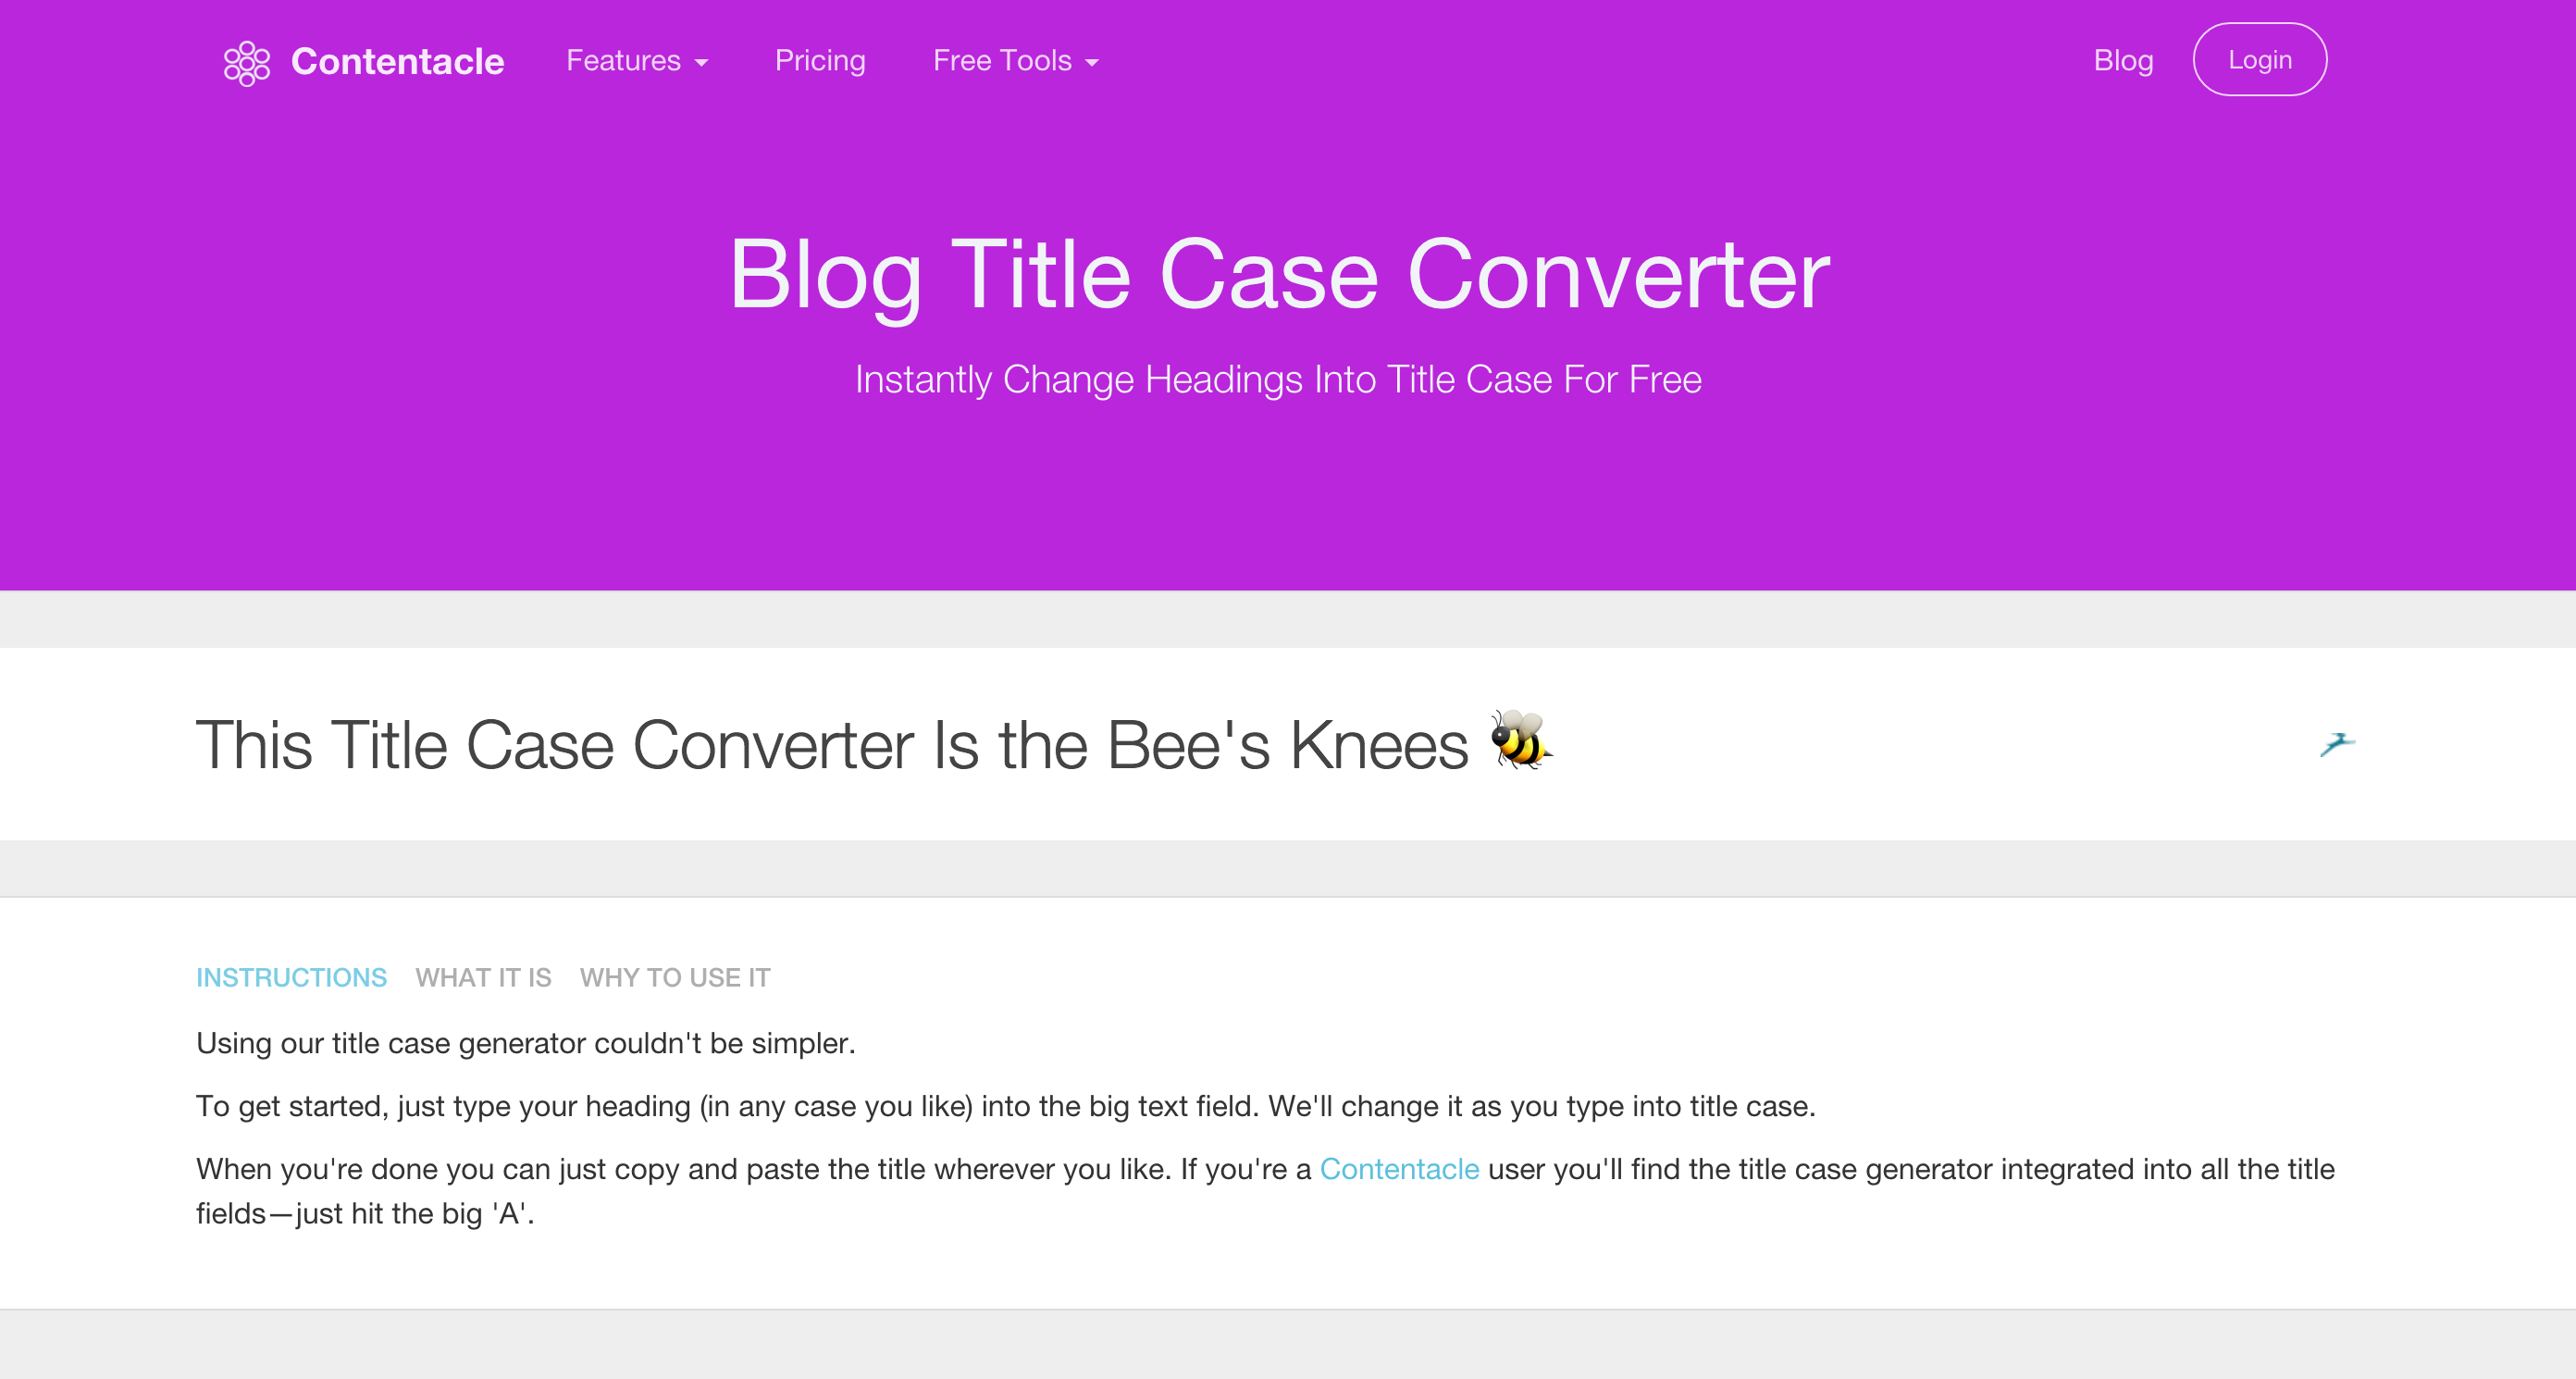 Contentacle Blog Title Case Converter